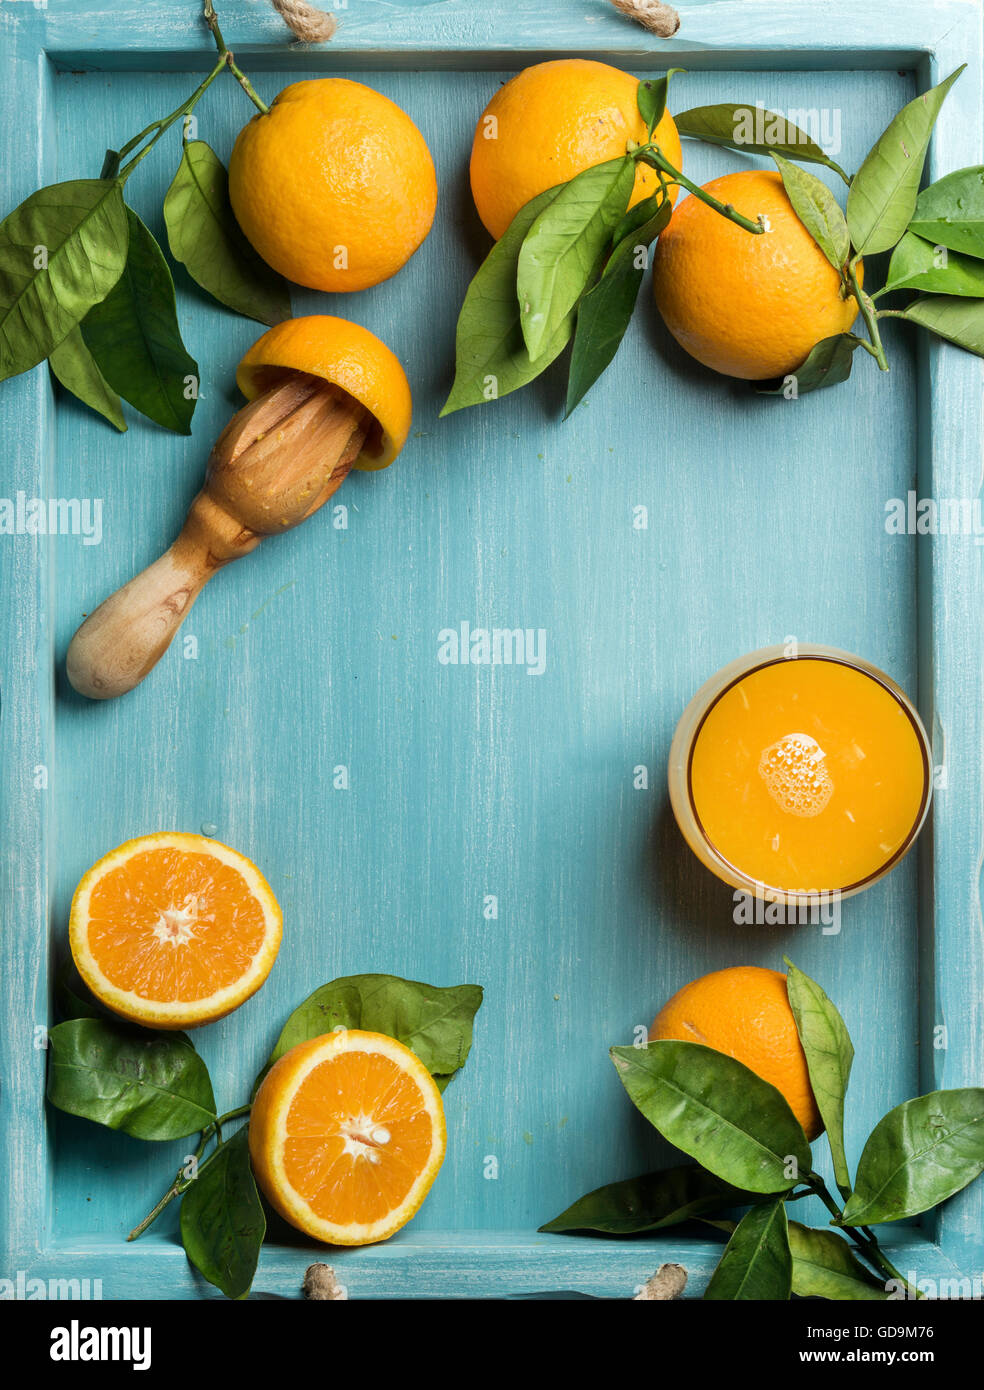 Glass of freshly squeezed orange juice and oranges with leaves on wooden turquoise blue painted background. Top - Stock Image